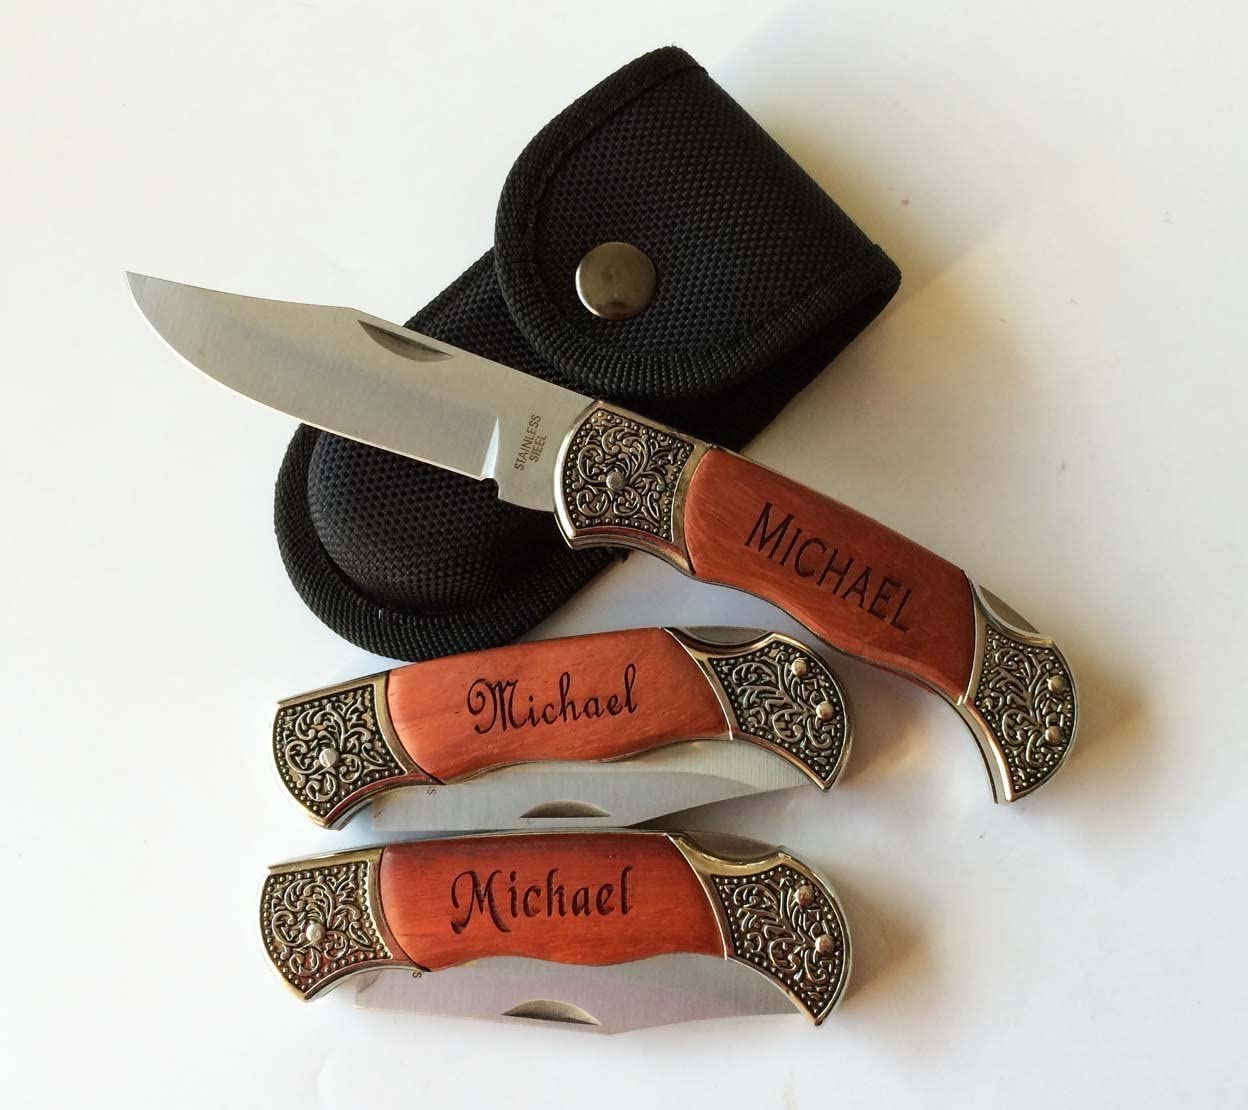 Personalized Laser Engraved Pocket Knife, Fathers Day, Groomsmen Gift, Graduation Gifts, Gifts for Men Free Engraving.